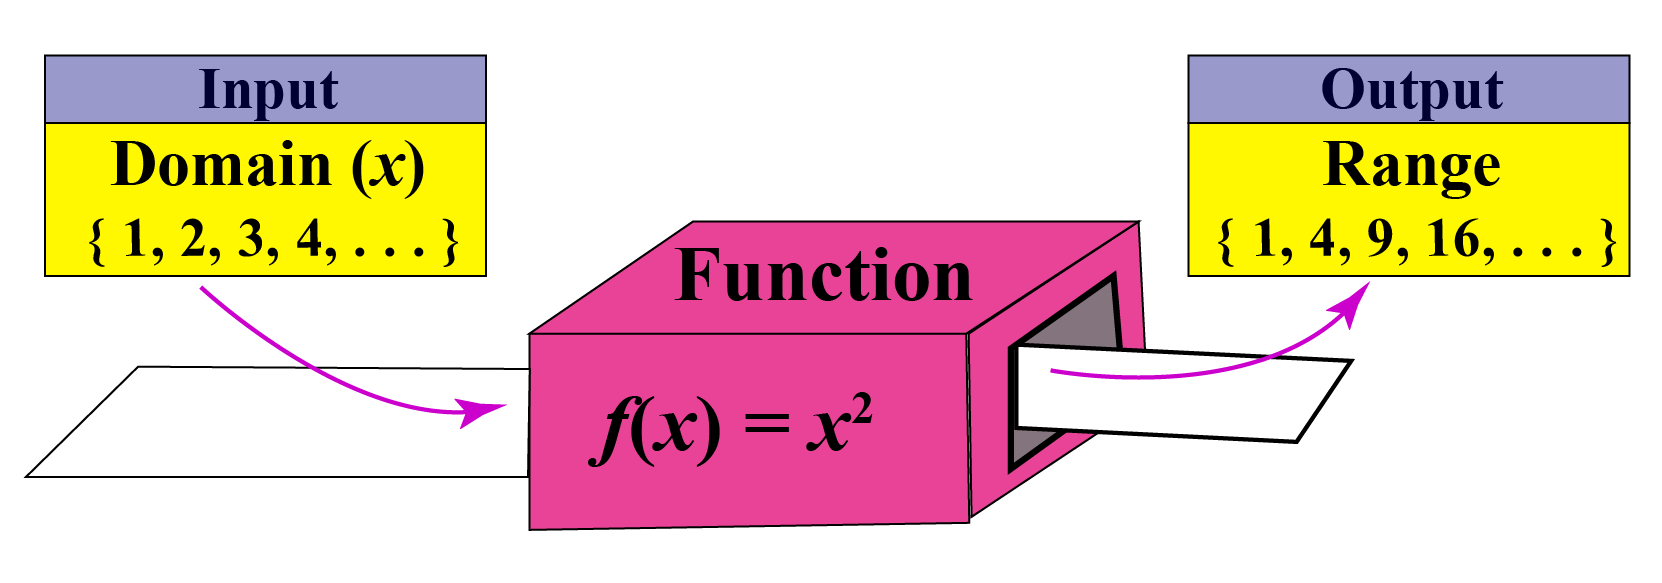 definition of domain, function, and range